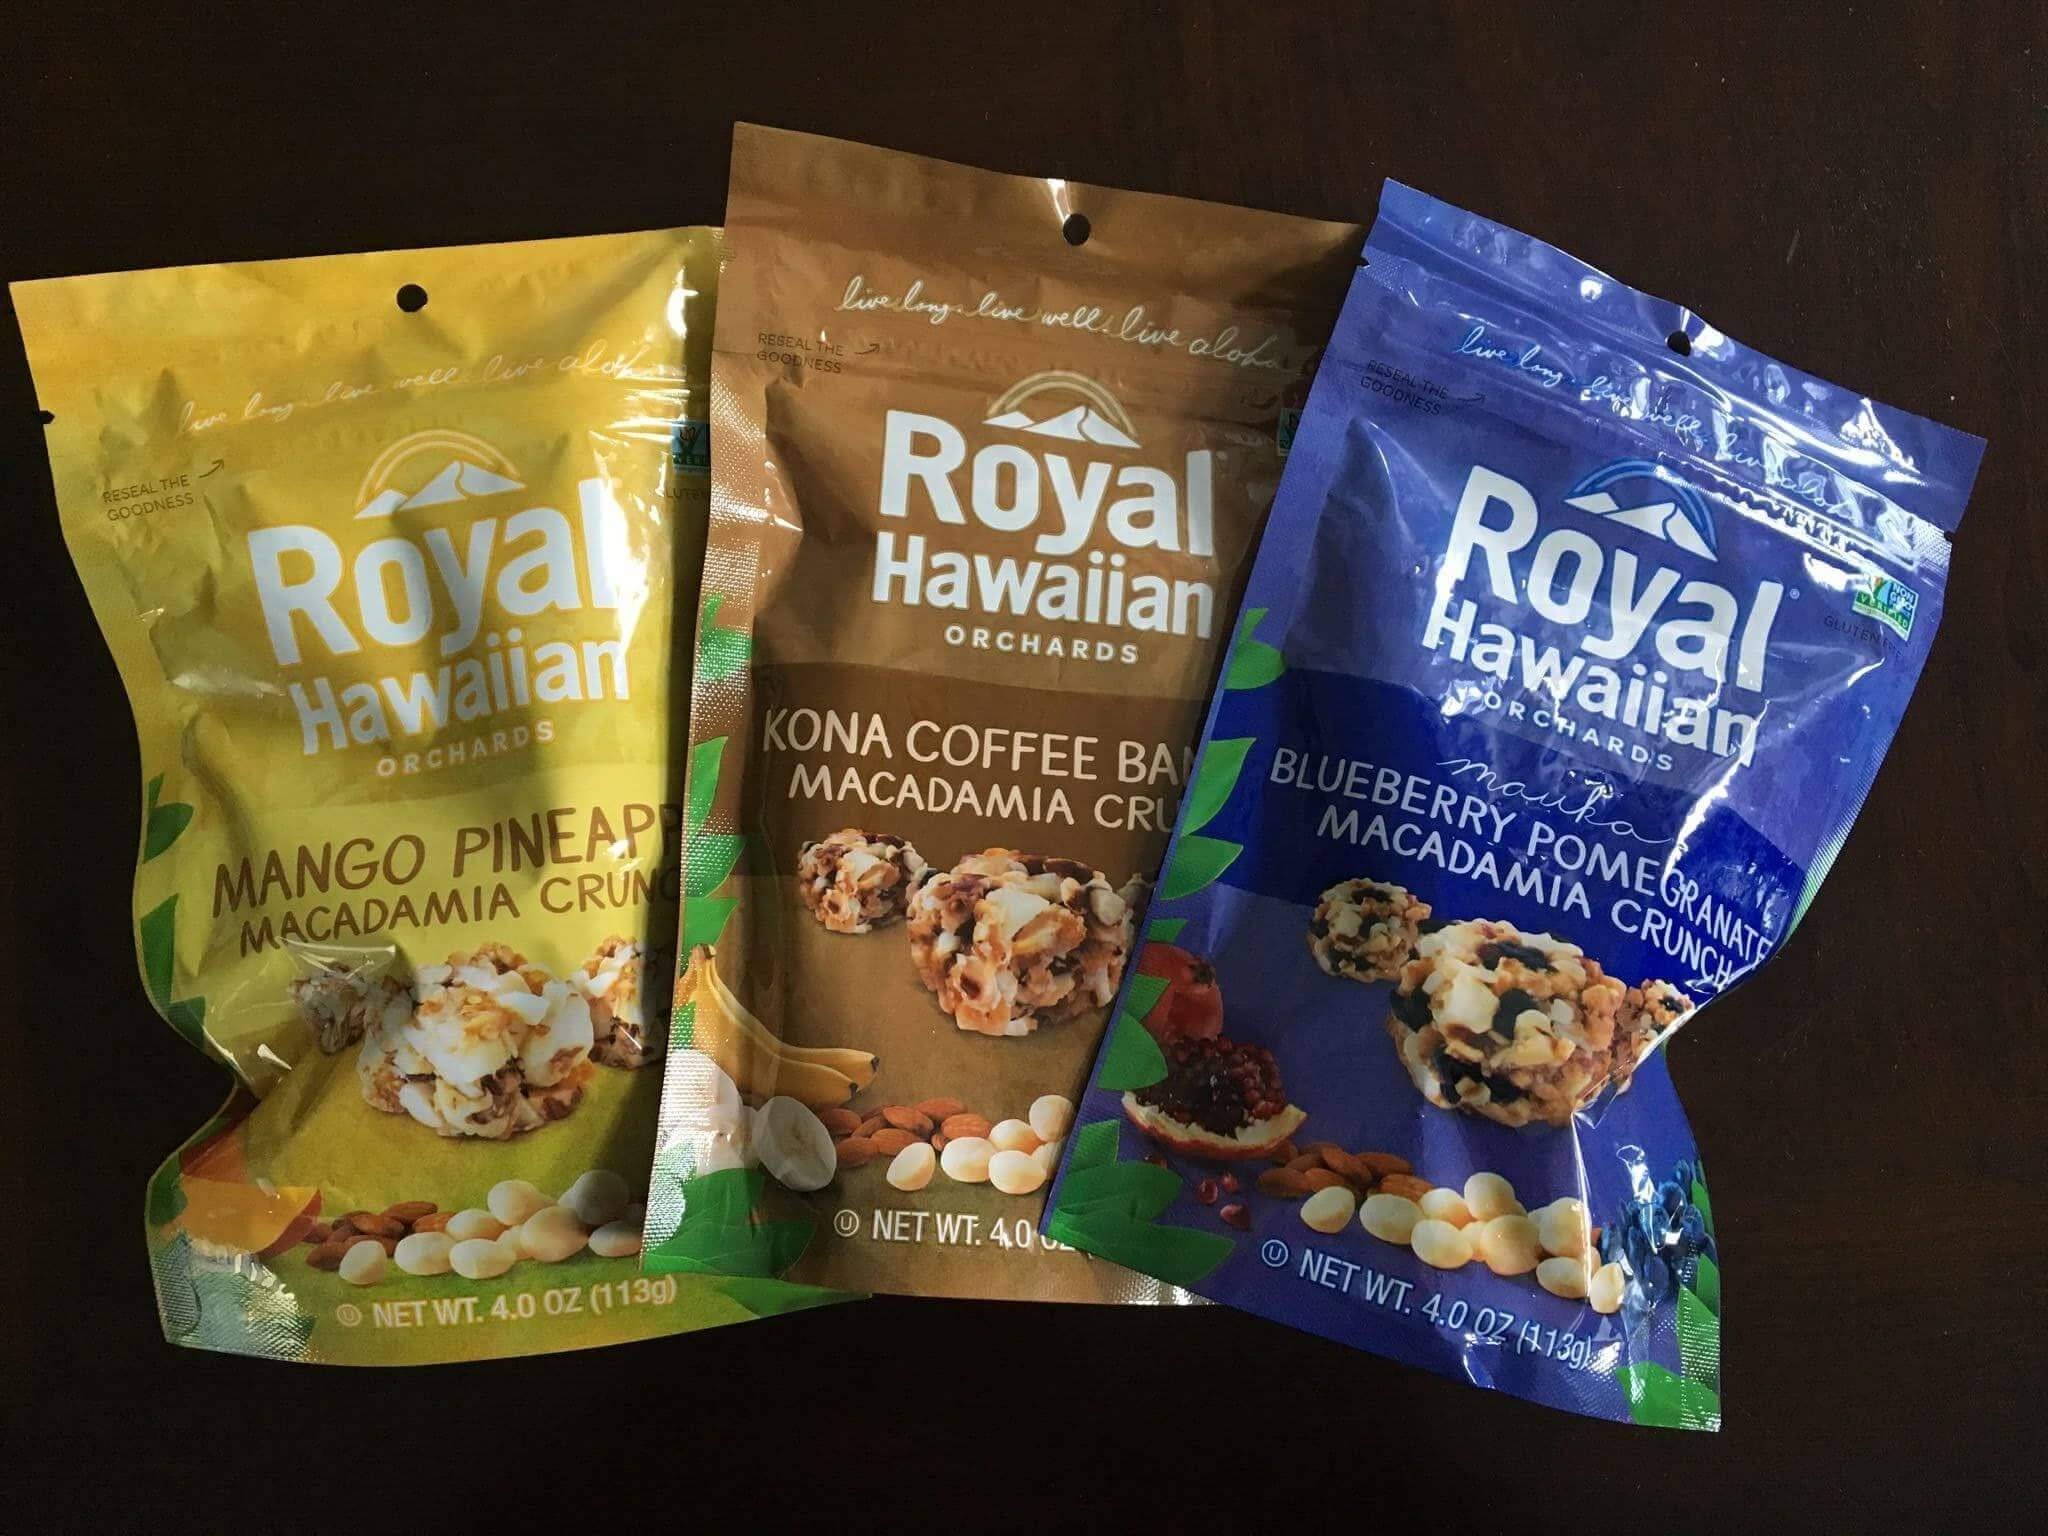 Royal Hawaiian Orchards Review: Fruit & Macadamia Nut Crunches